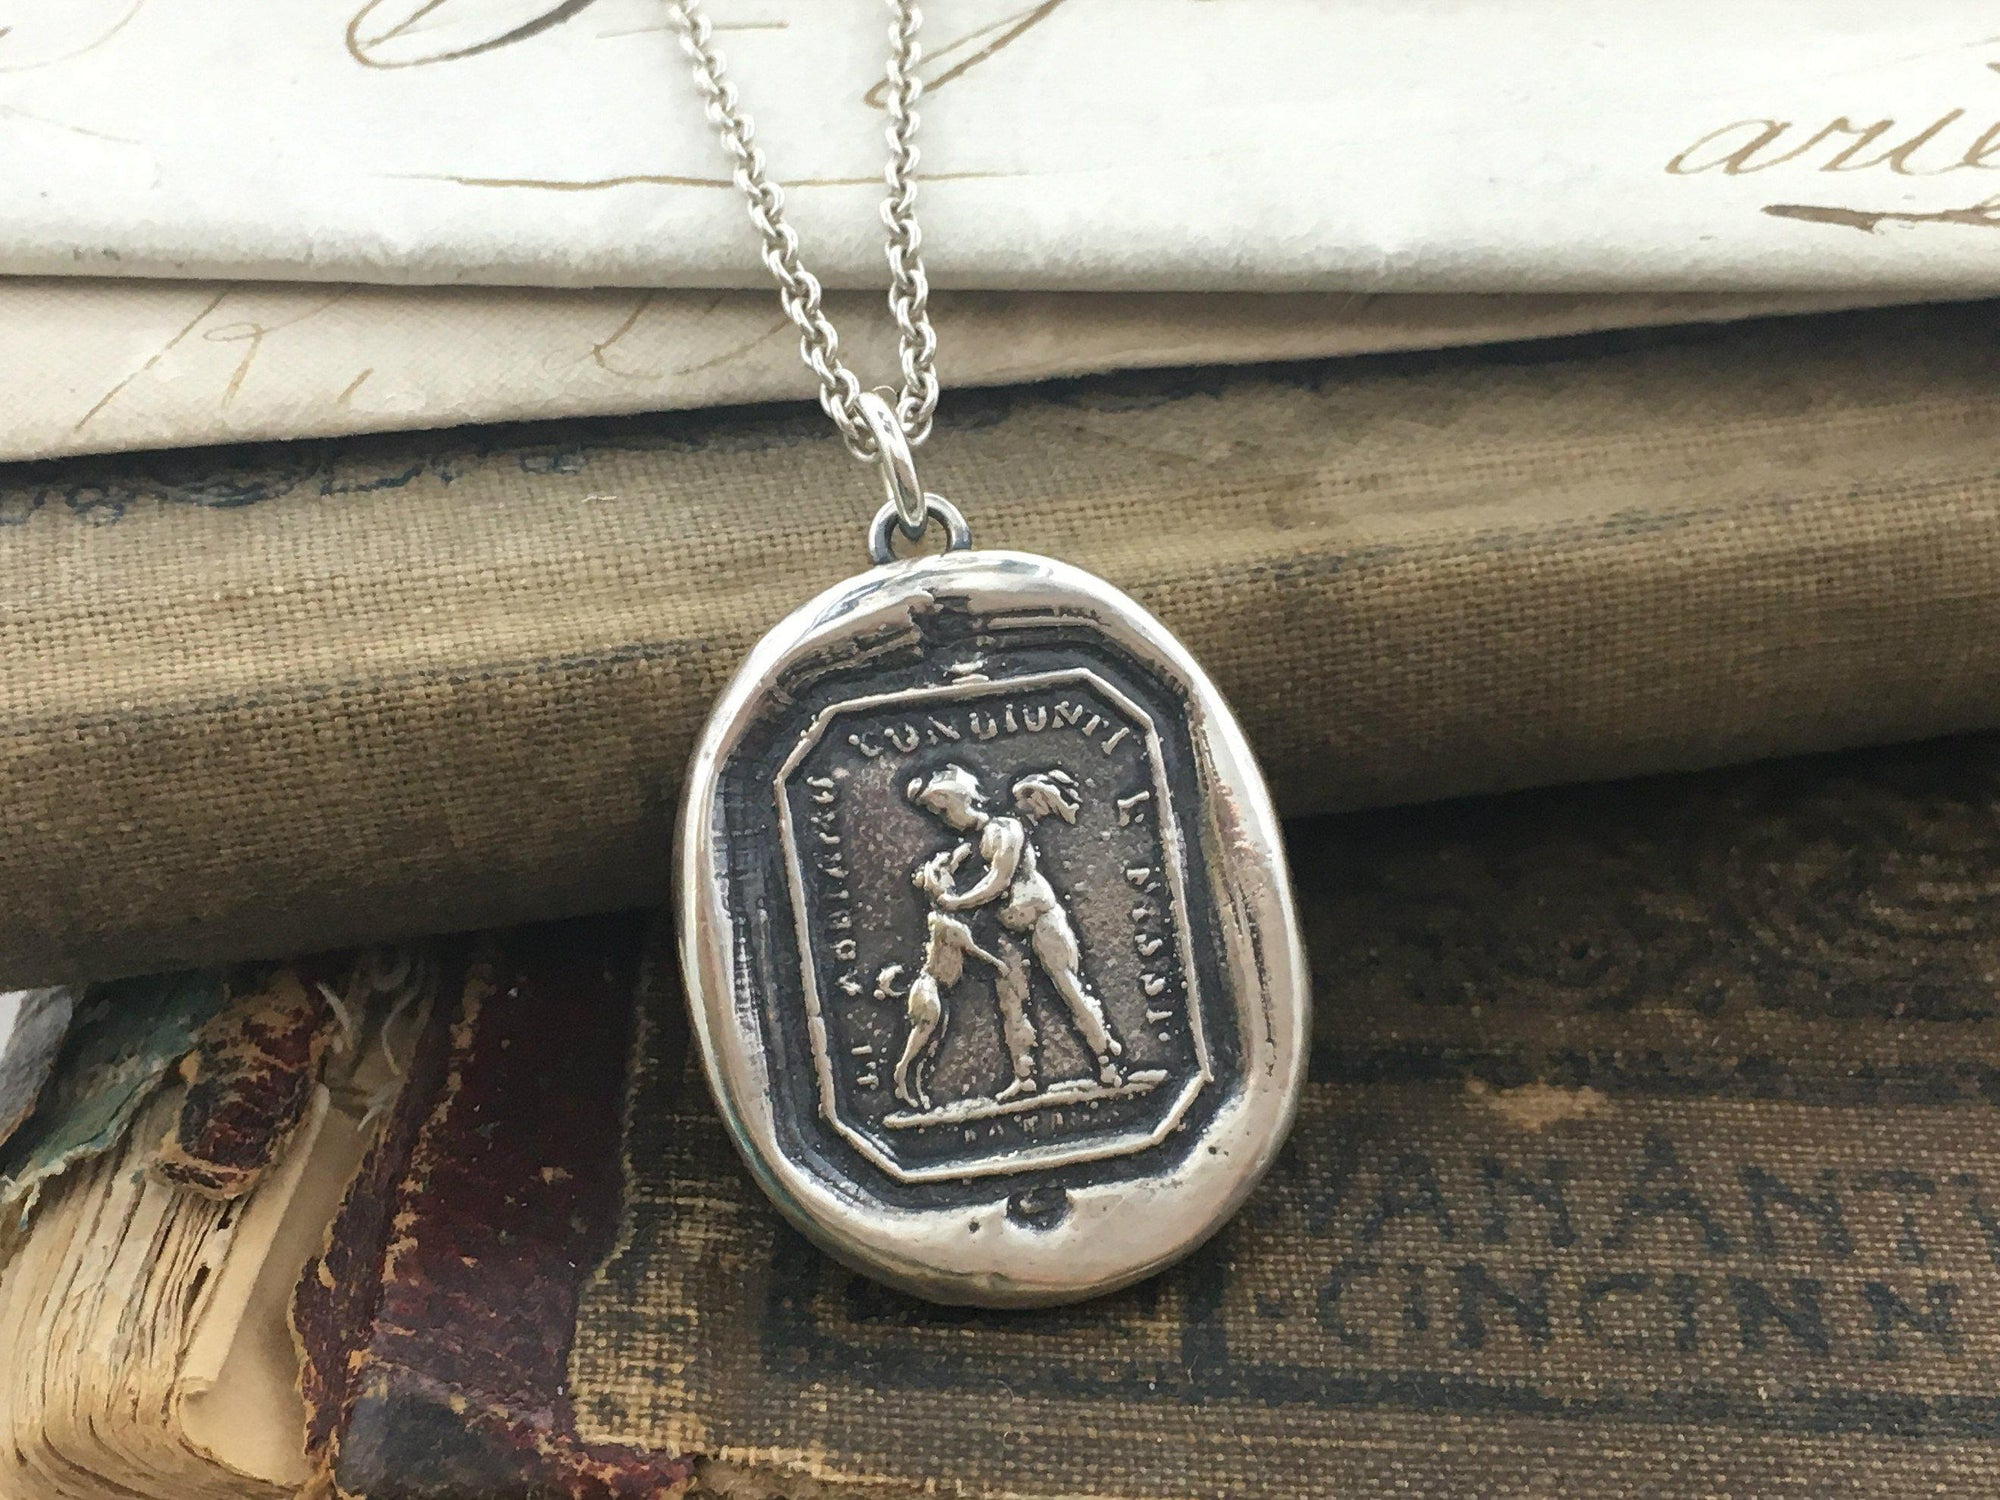 Friends for Life Wax Seal Pendant - Love & Friendship